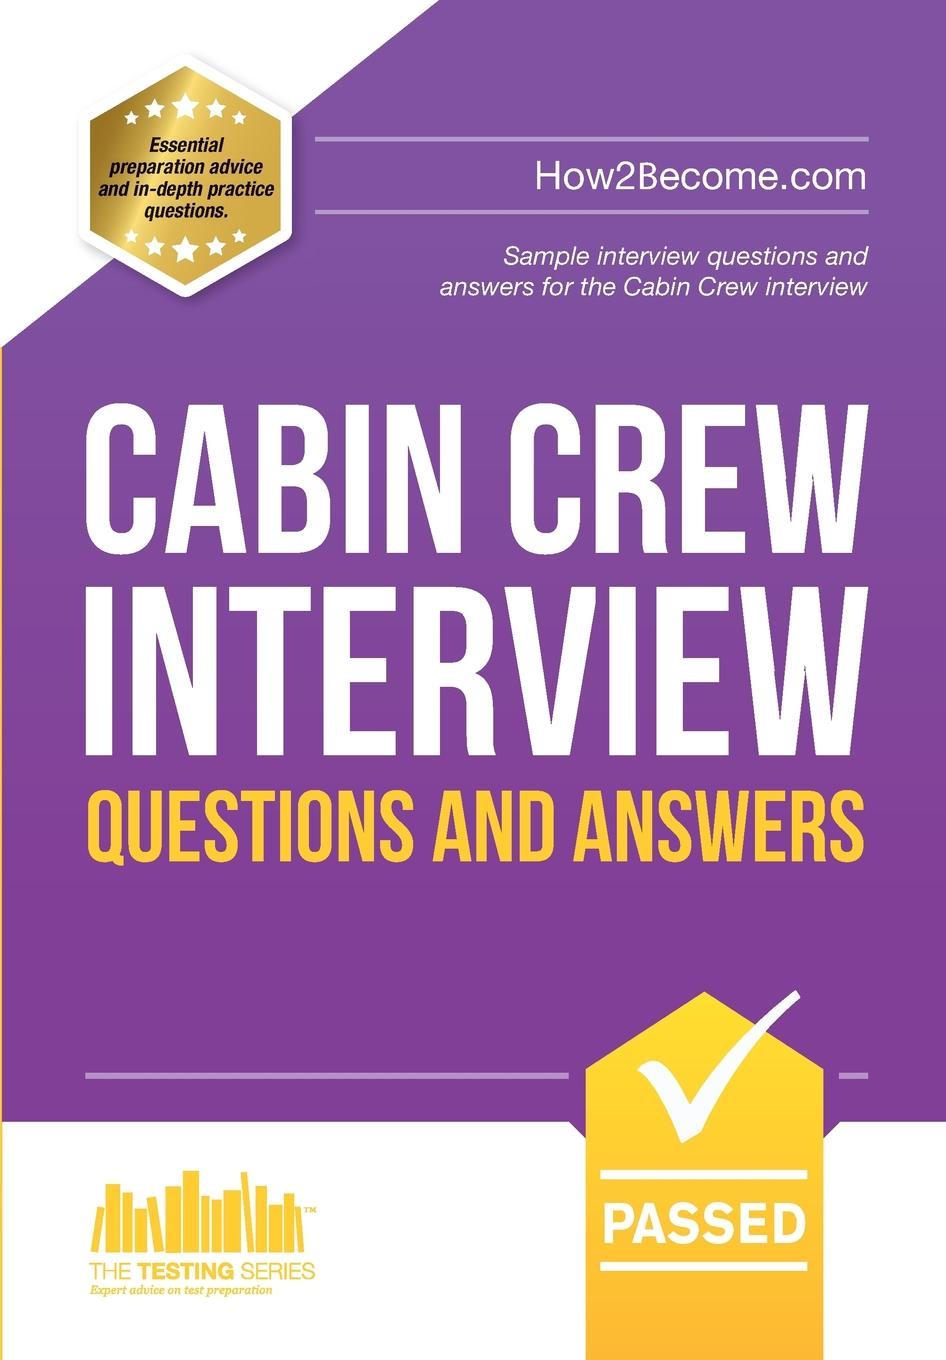 How2Become Cabin Crew Interview Questions and Answers. Sample interview questions and answers for the Cabin Crew interview the crew 2 [ps4]